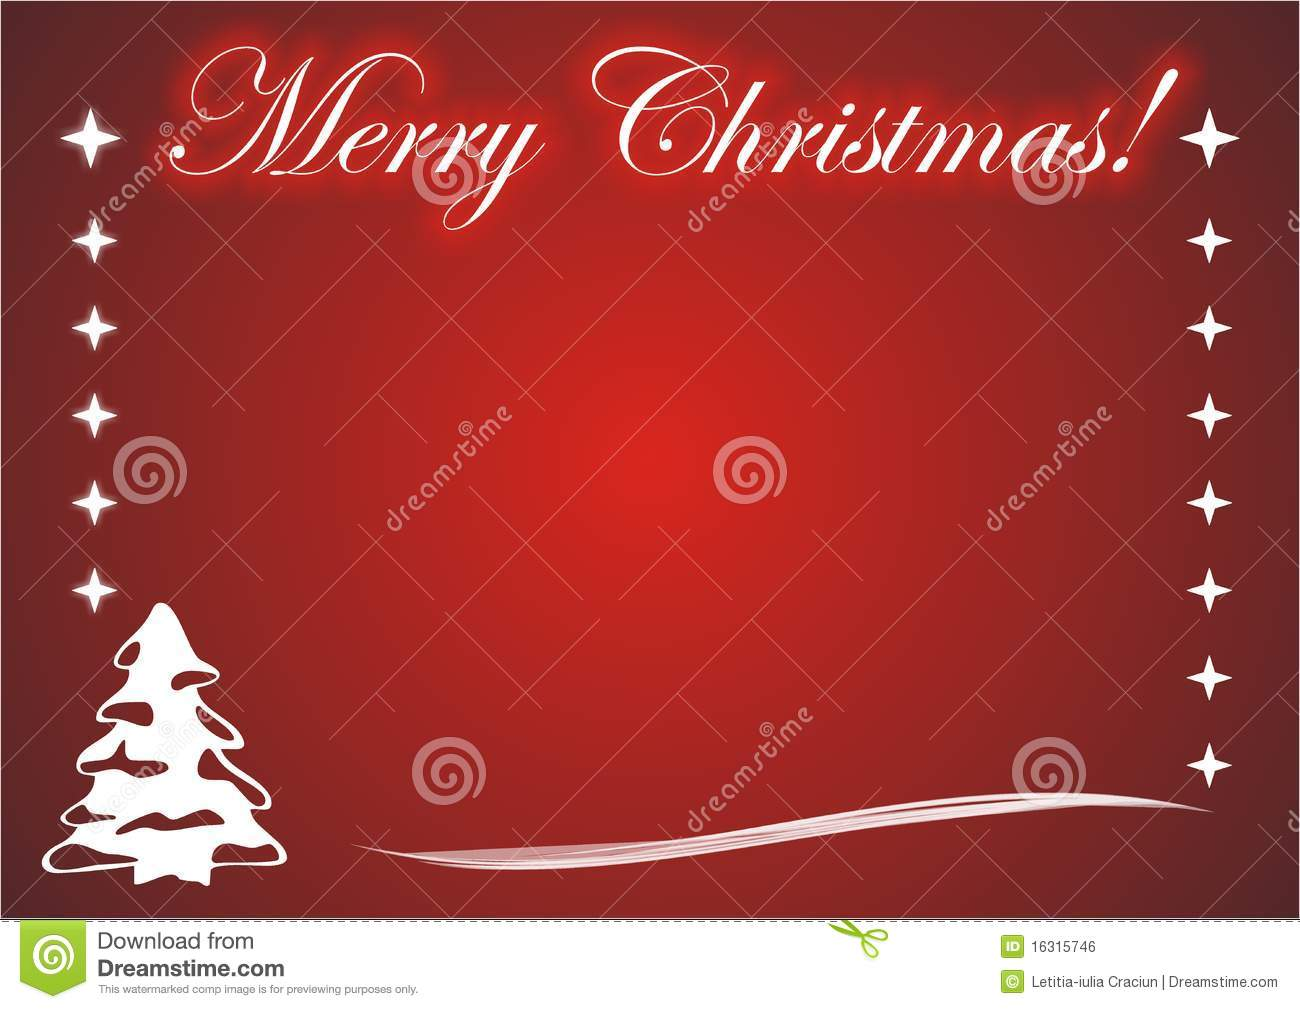 Merry Christmas Card Photo Frame Stock Vector - Illustration of ...